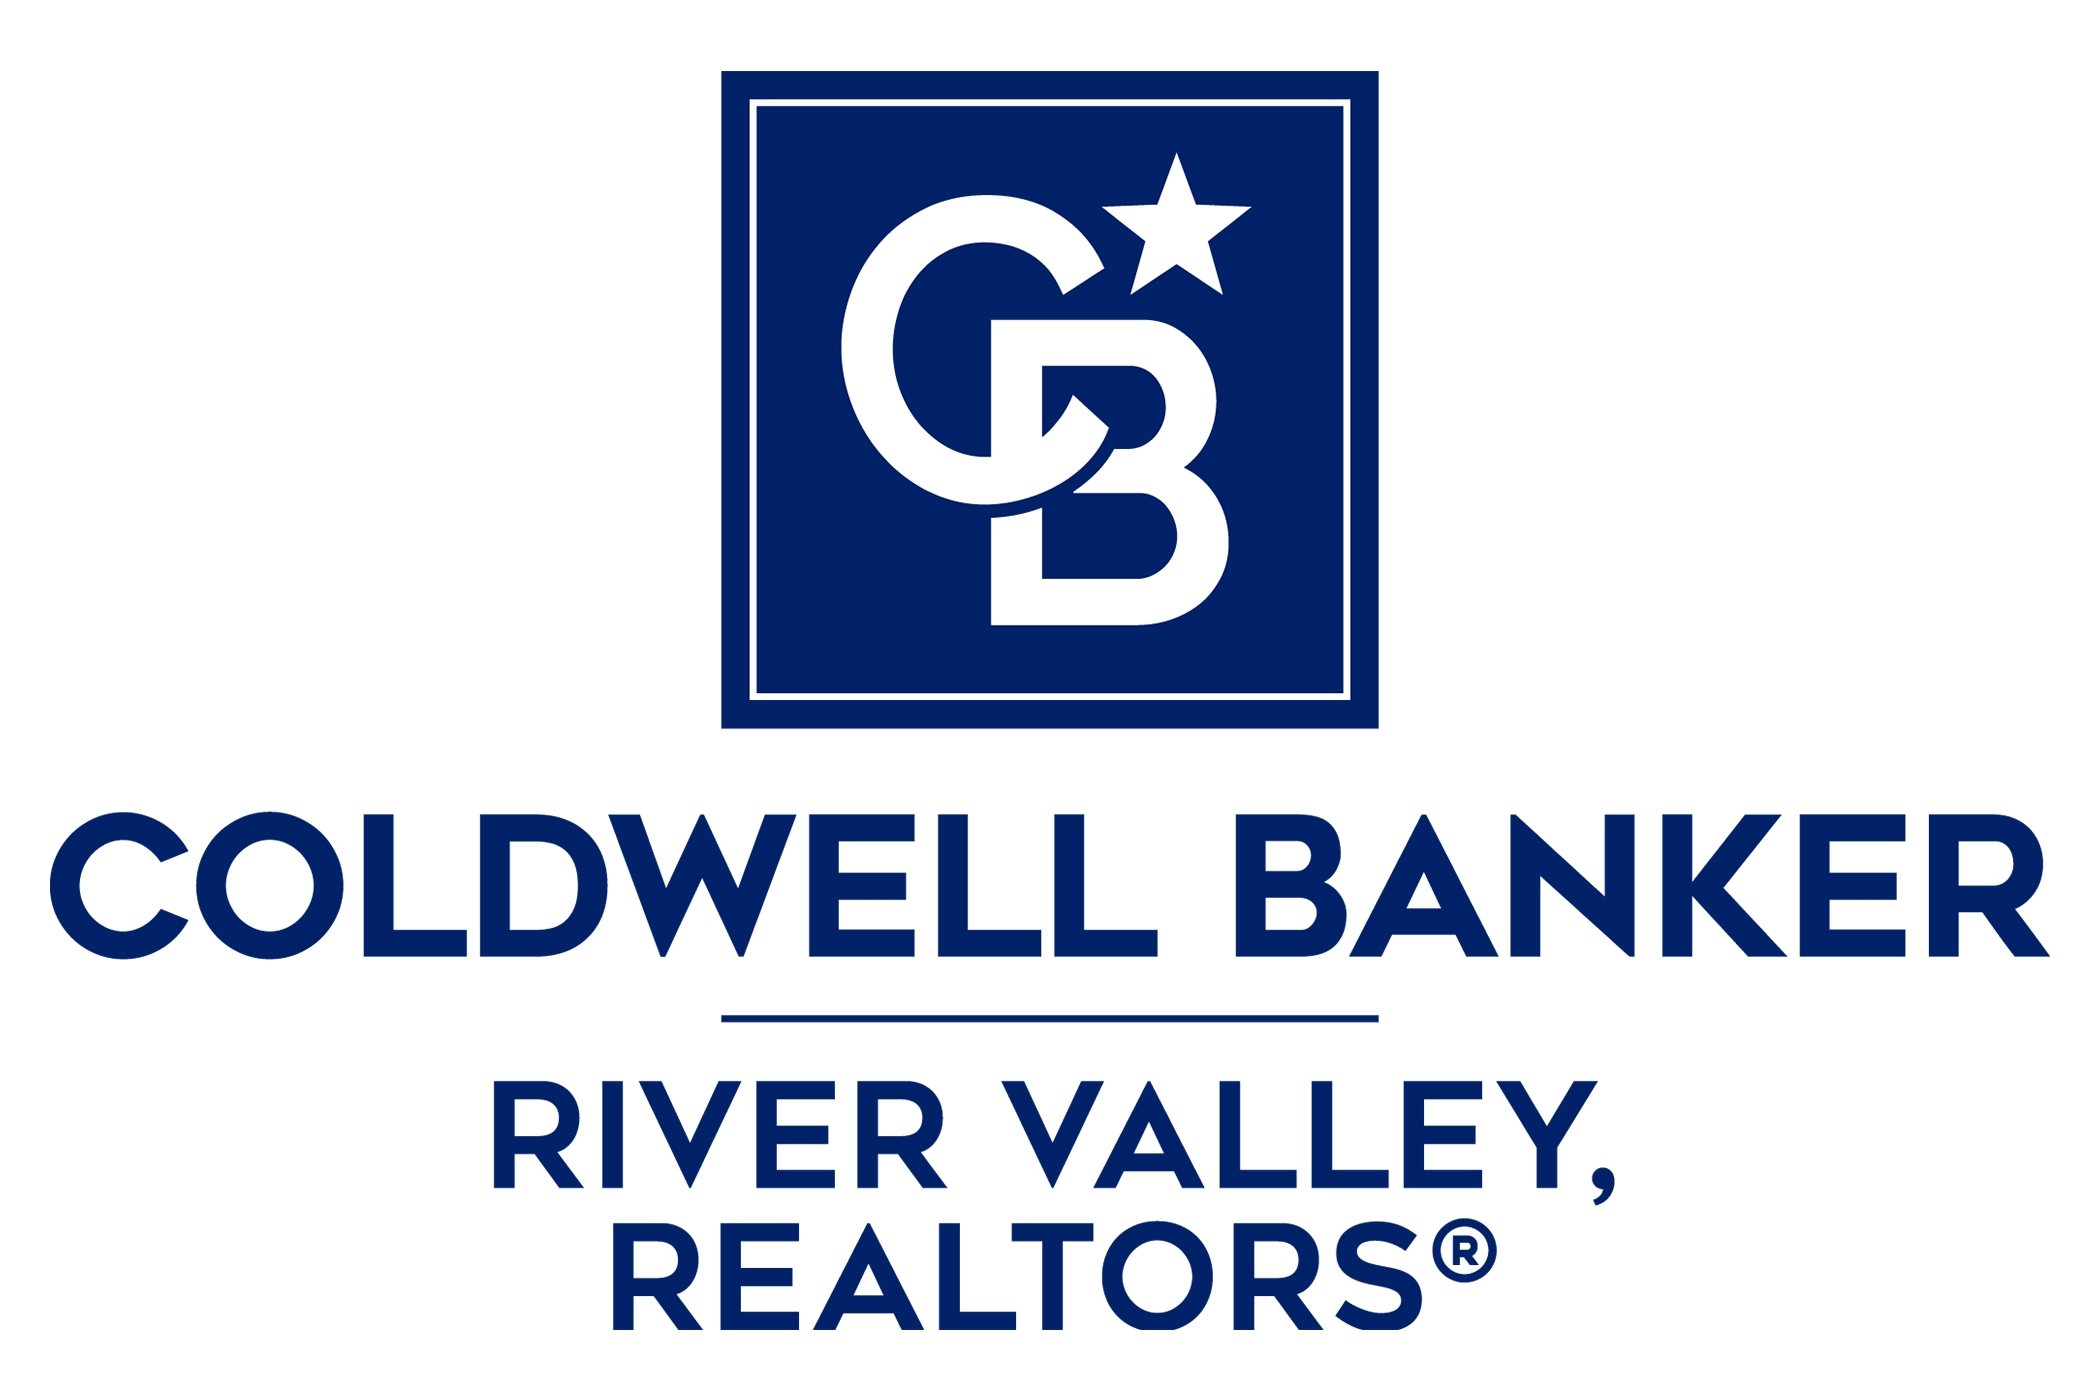 Tony Reyerson - Coldwell Banker River Valley Realtors